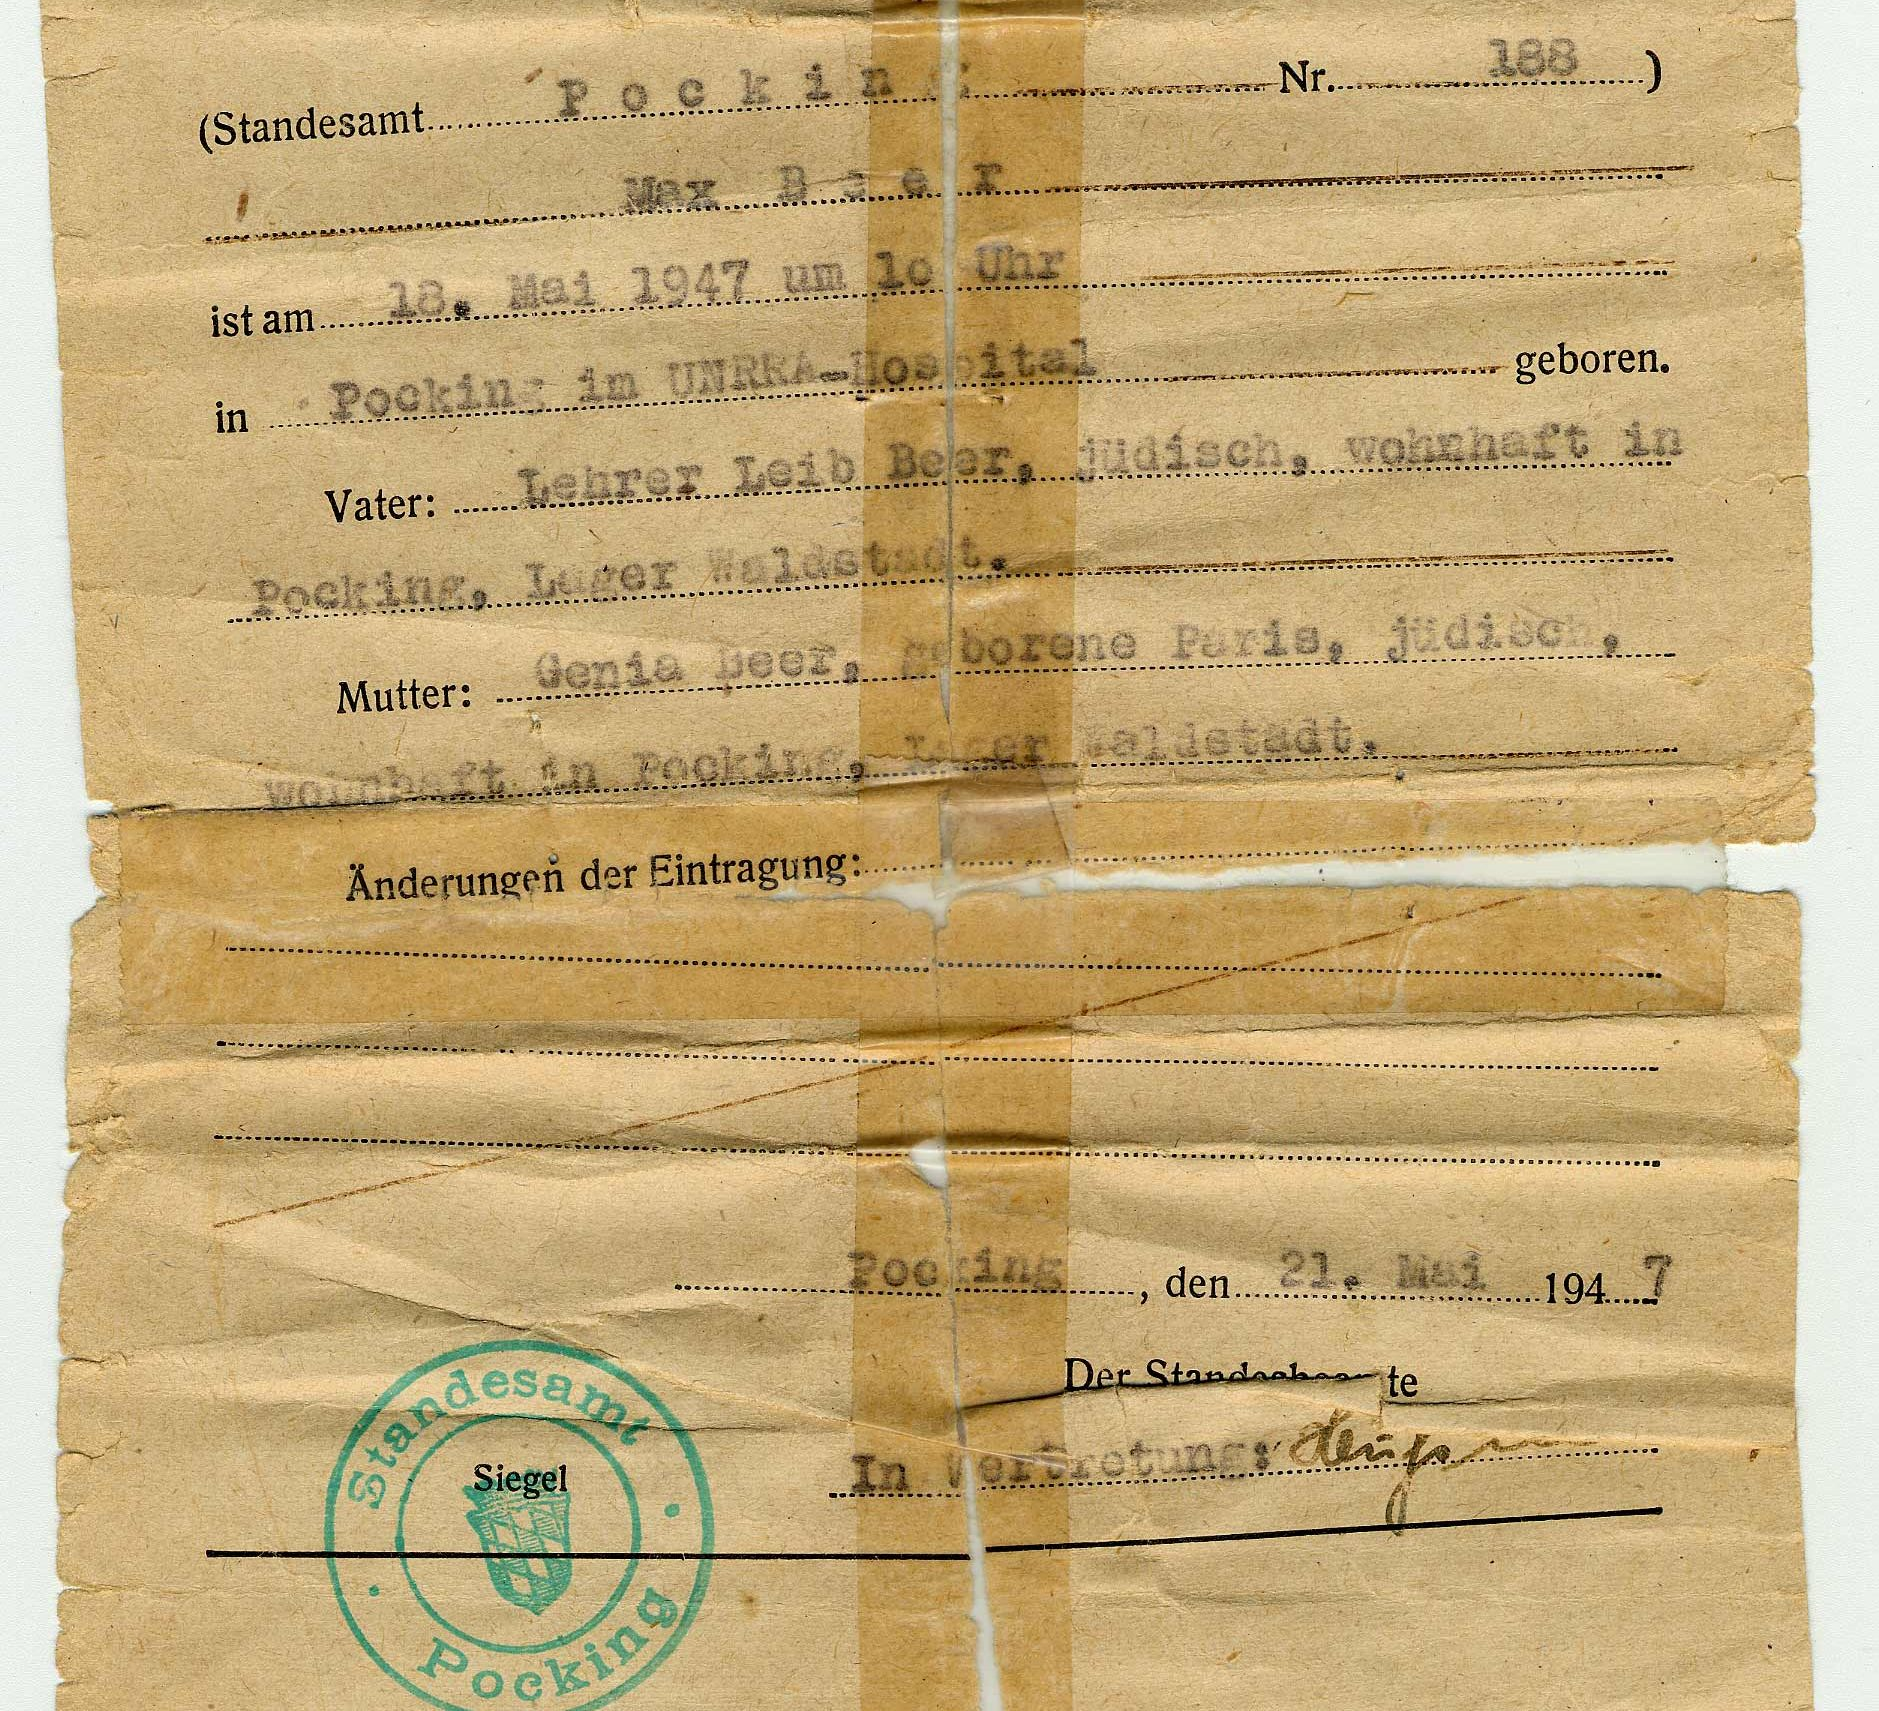 Max Beer's birth certificate. He was born on May 18, 1947 in a DP camp created by the UNRRA (United Nations Relief and Rehabilitation Administration).